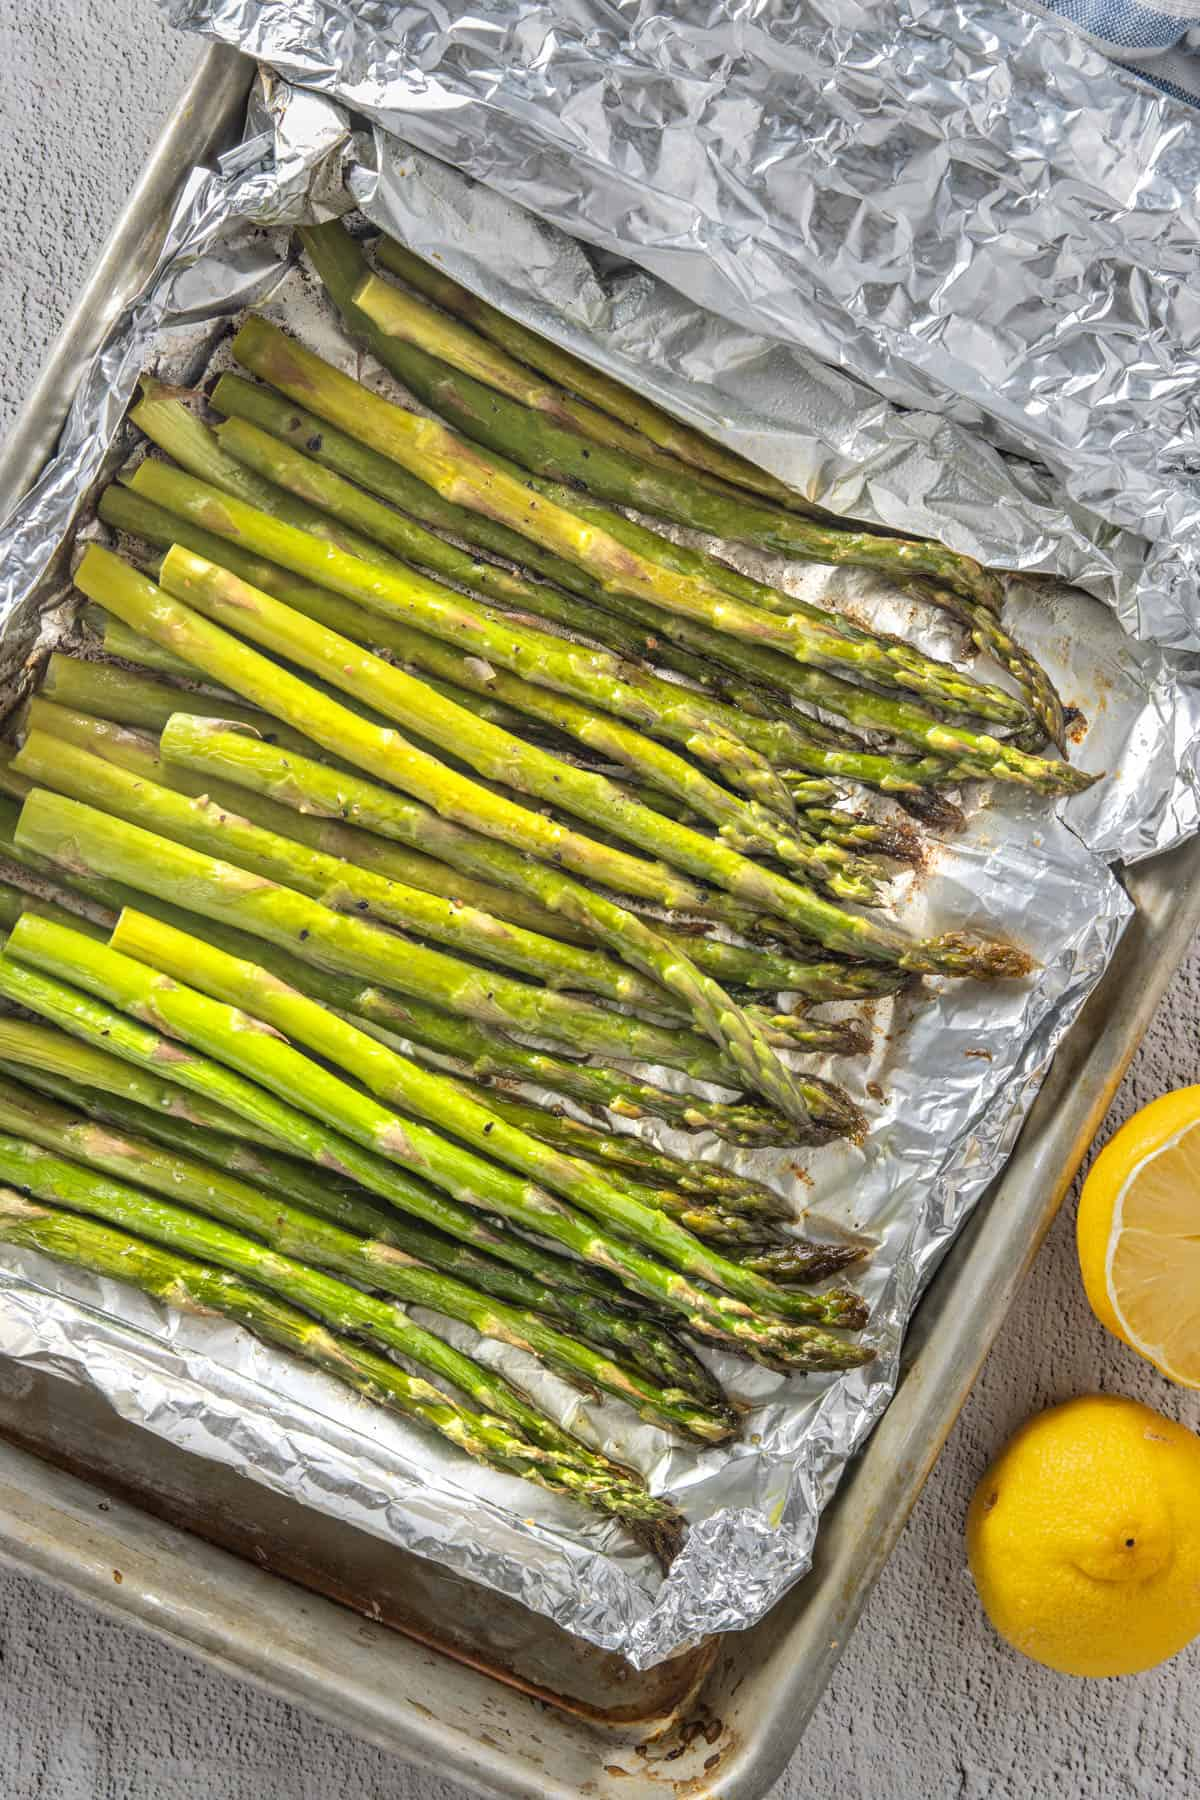 Roasted asparagus in foil, with lemons on the side